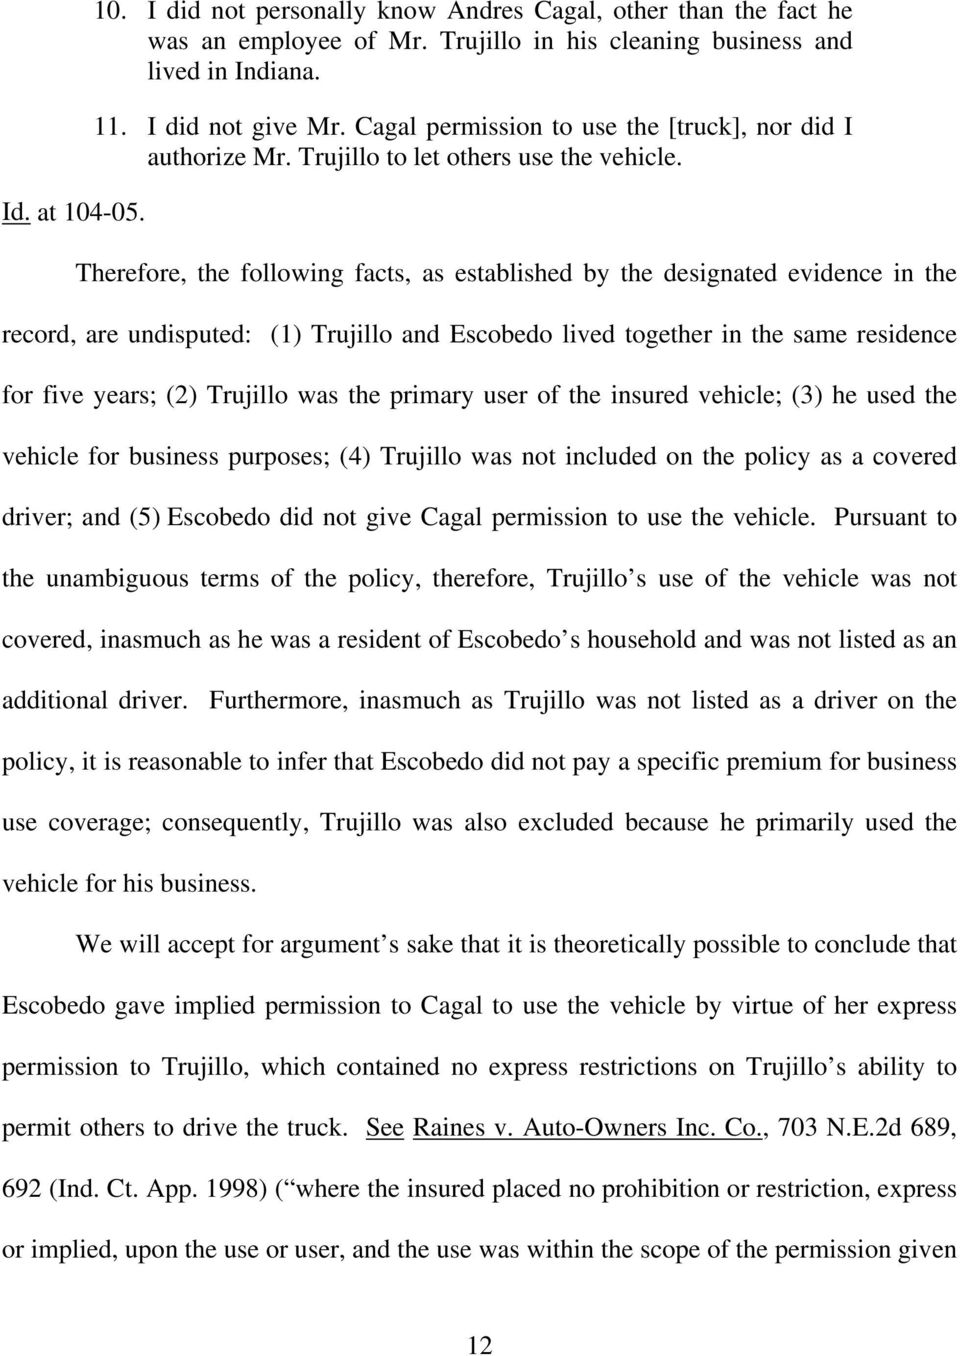 Therefore, the following facts, as established by the designated evidence in the record, are undisputed: (1) Trujillo and Escobedo lived together in the same residence for five years; (2) Trujillo